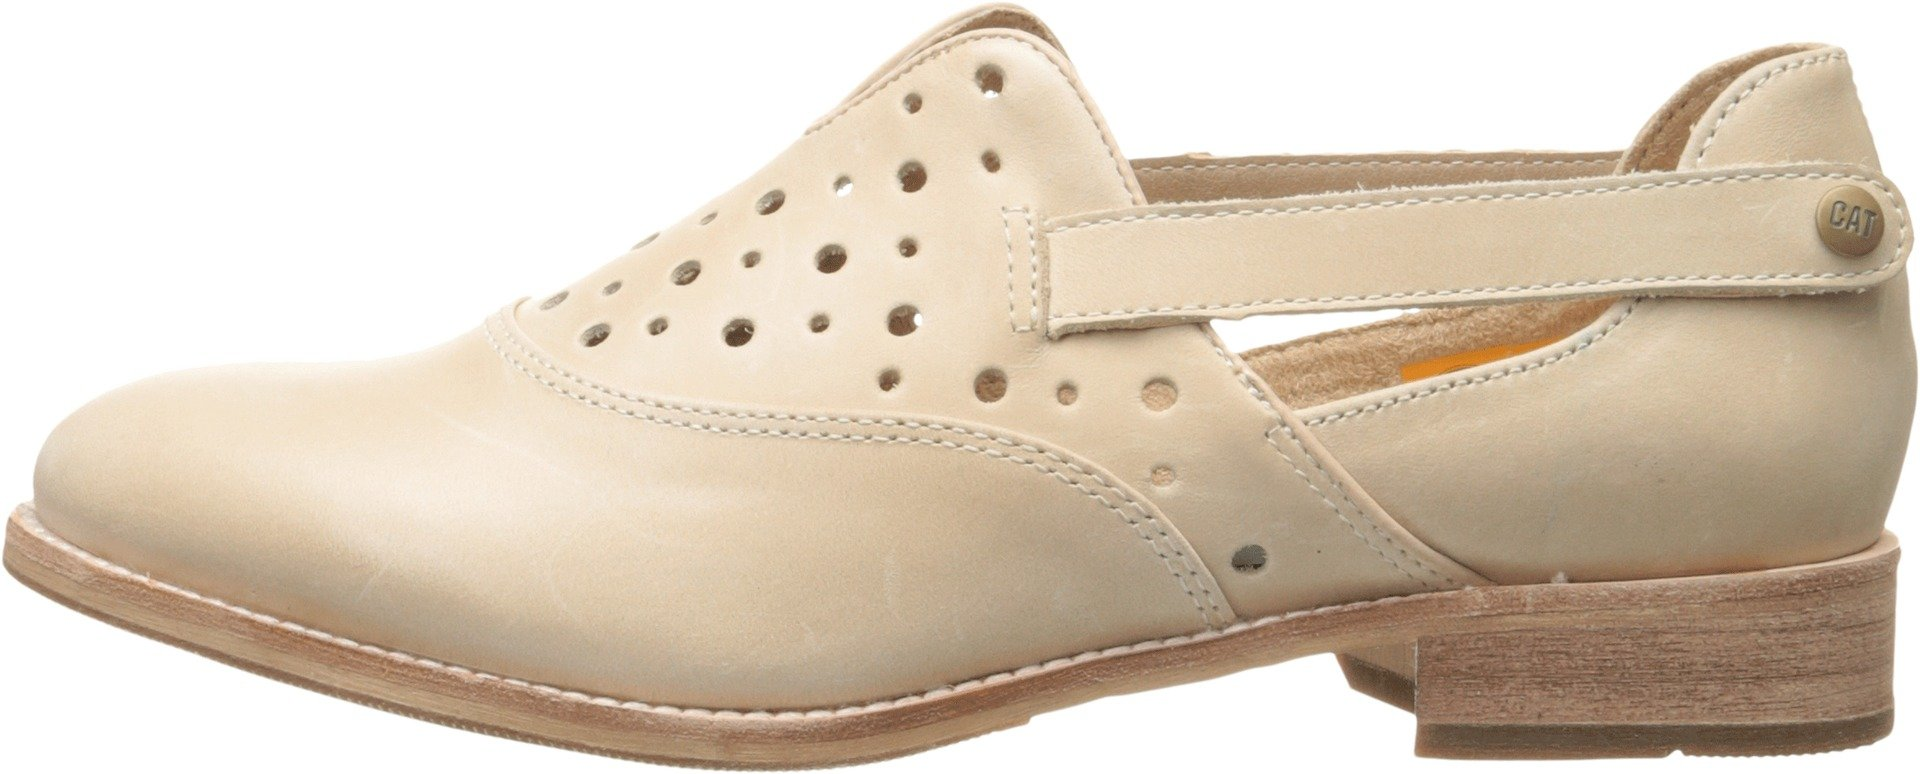 087d9d1dd76b Galleon - Caterpillar Women s Mona Oxford